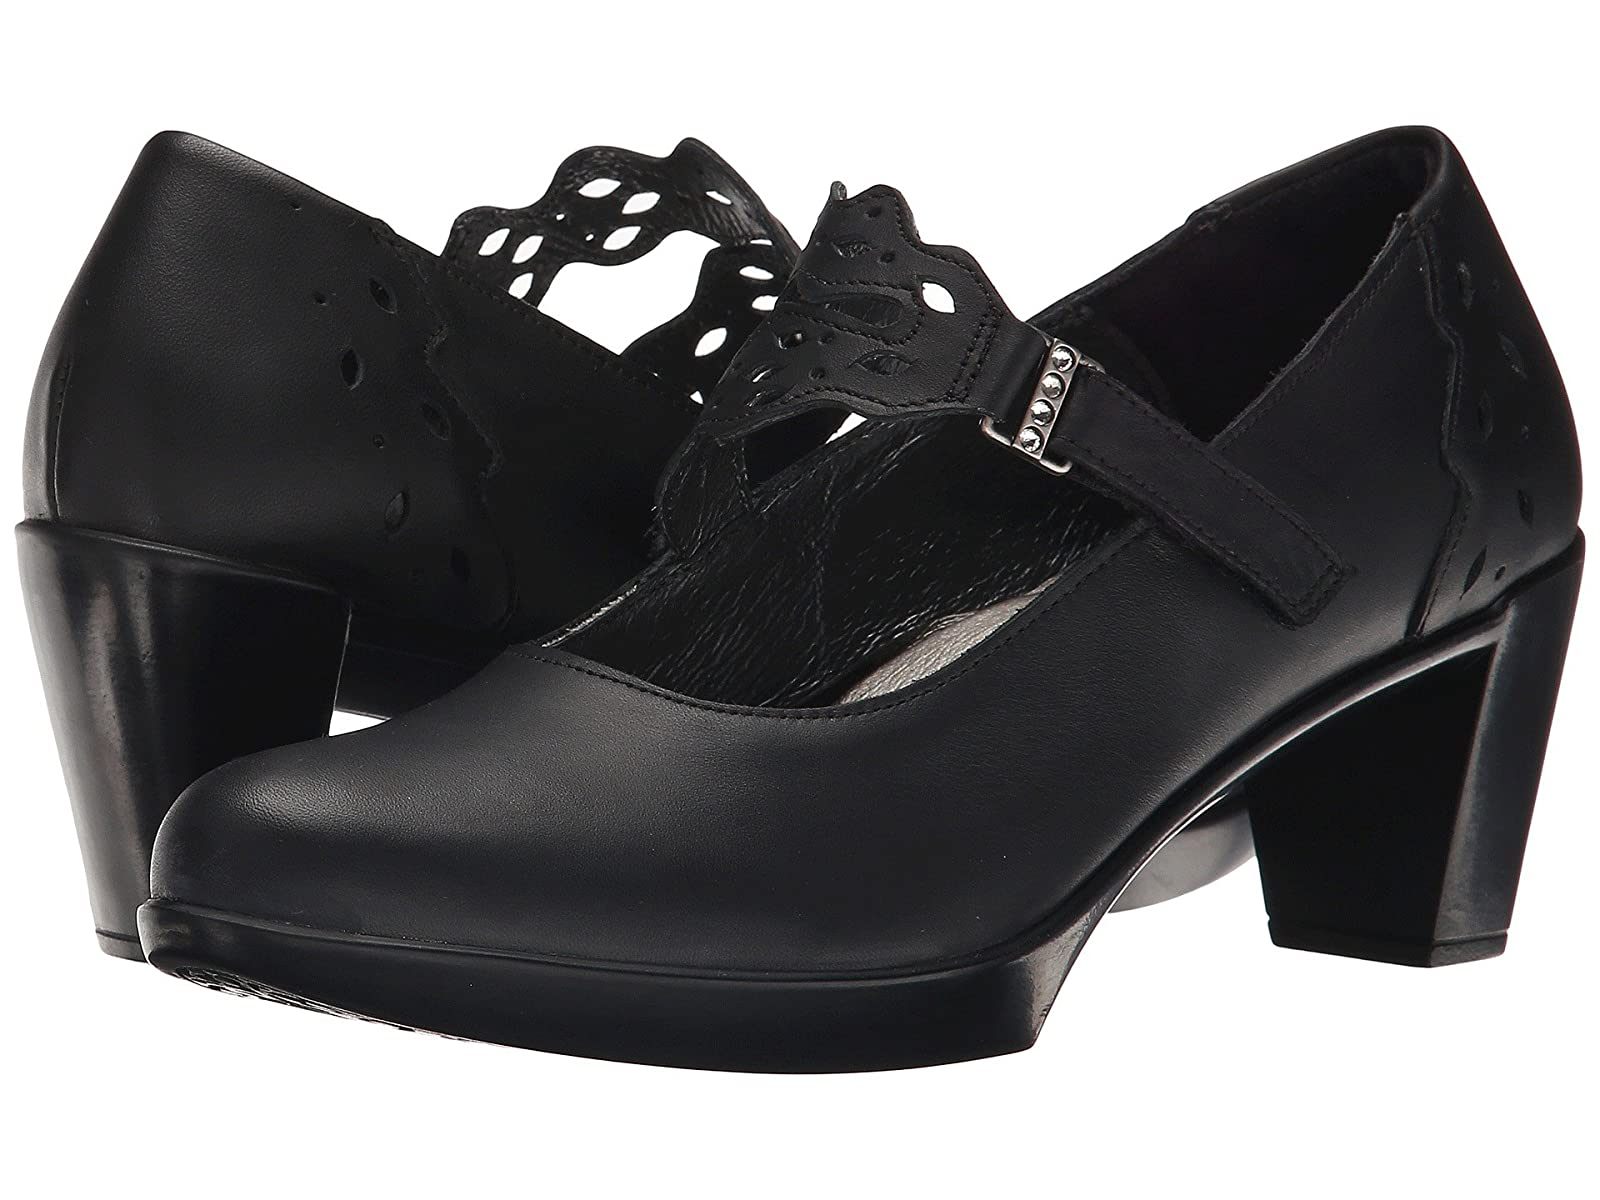 Naot AmatoAtmospheric grades have affordable shoes